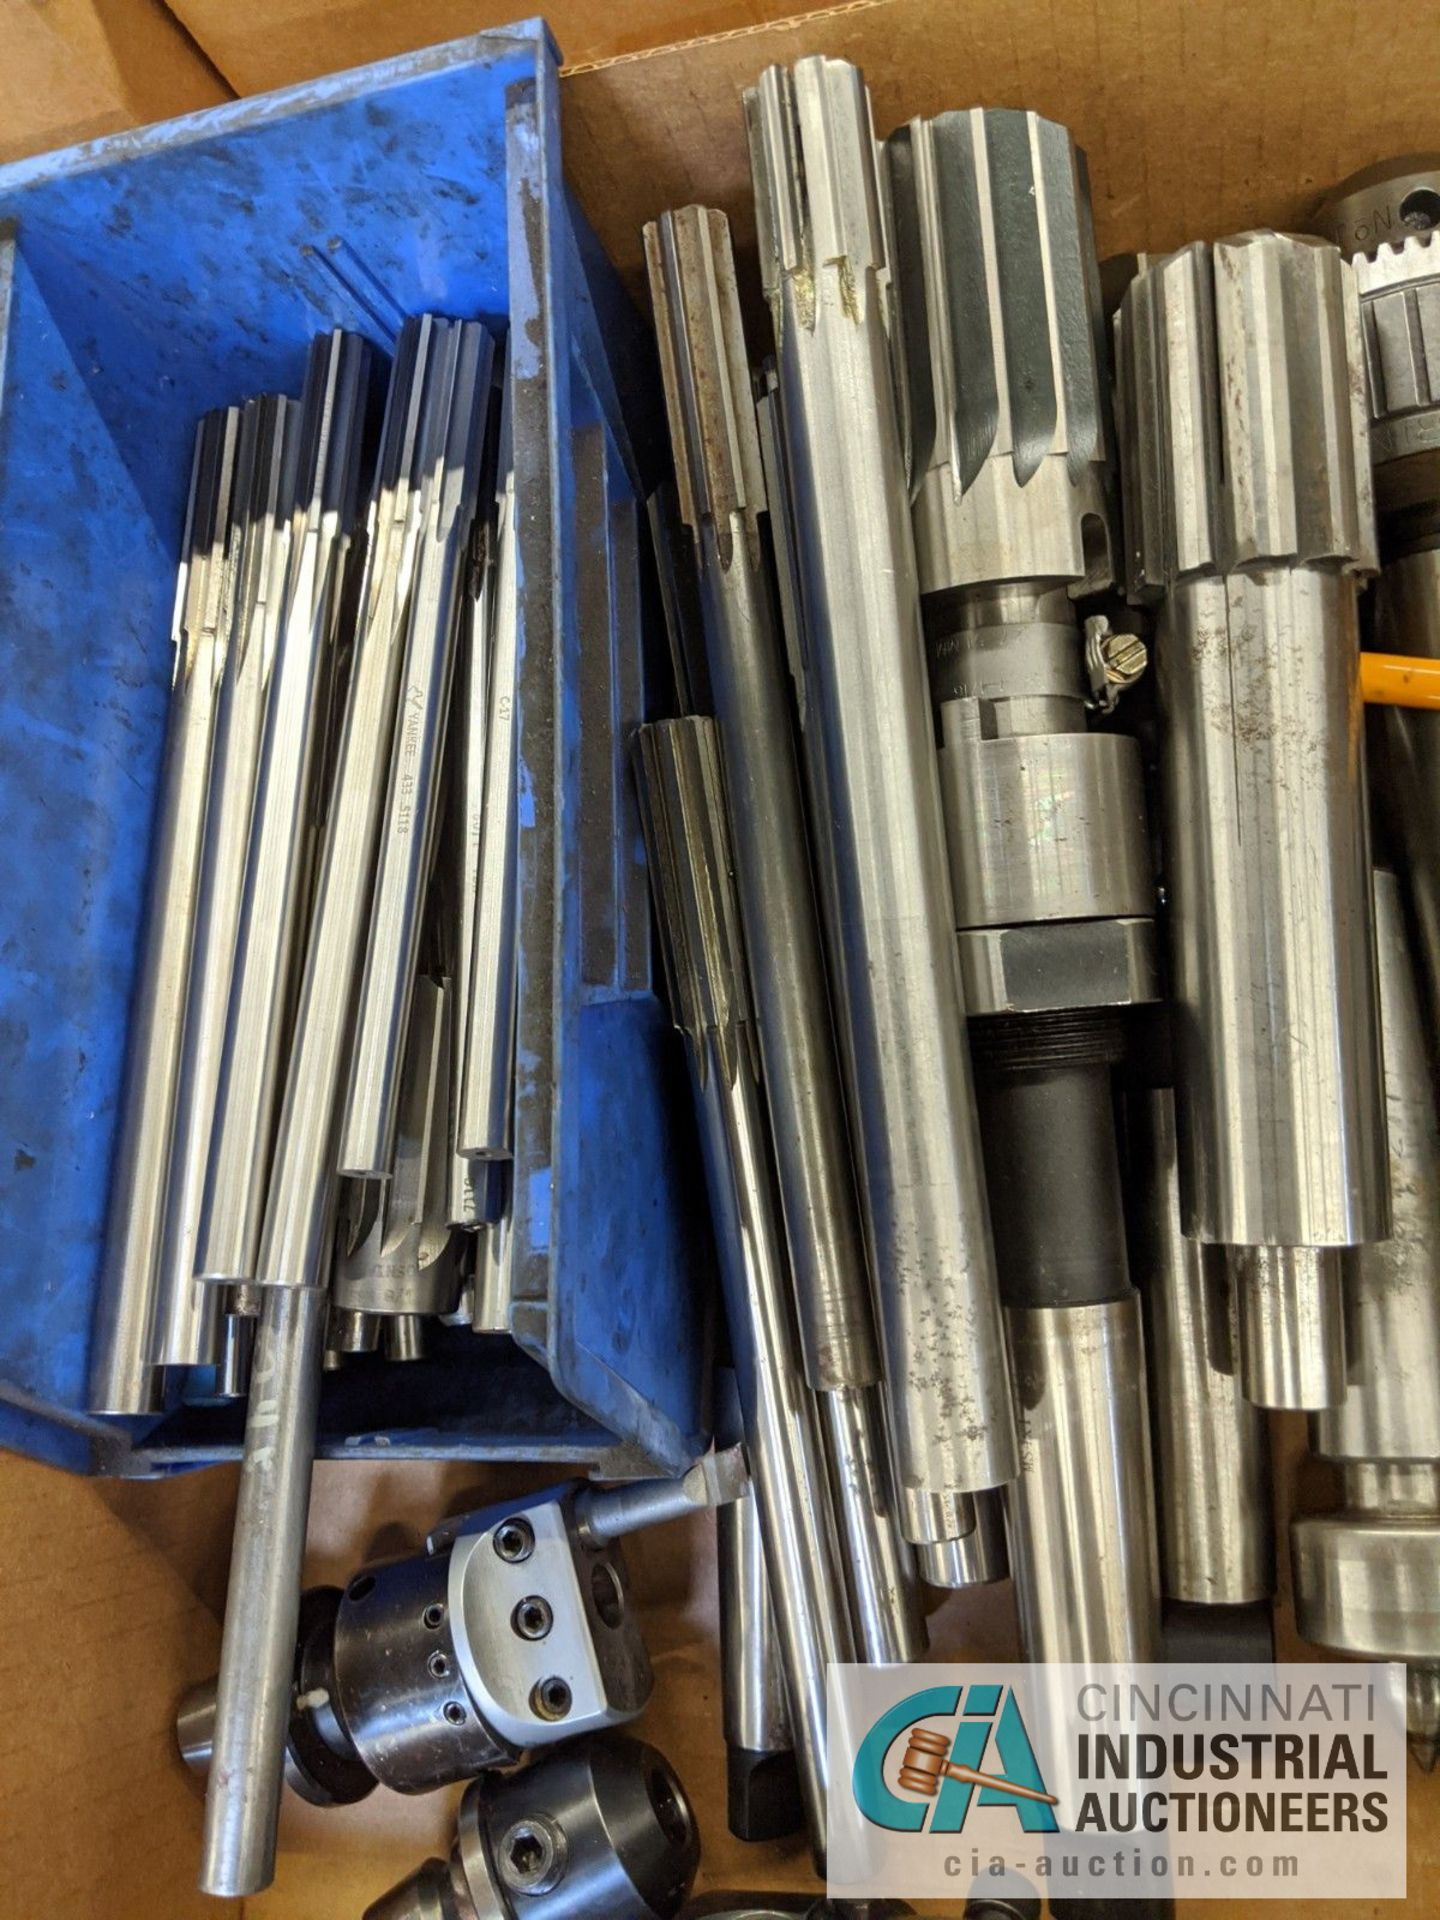 (LOT) BOX OF TOOLING; REAMERS, DRILL CHUCKS, LIVE CENTERS, ADJUSTABLE BORING HEADS - Image 4 of 4